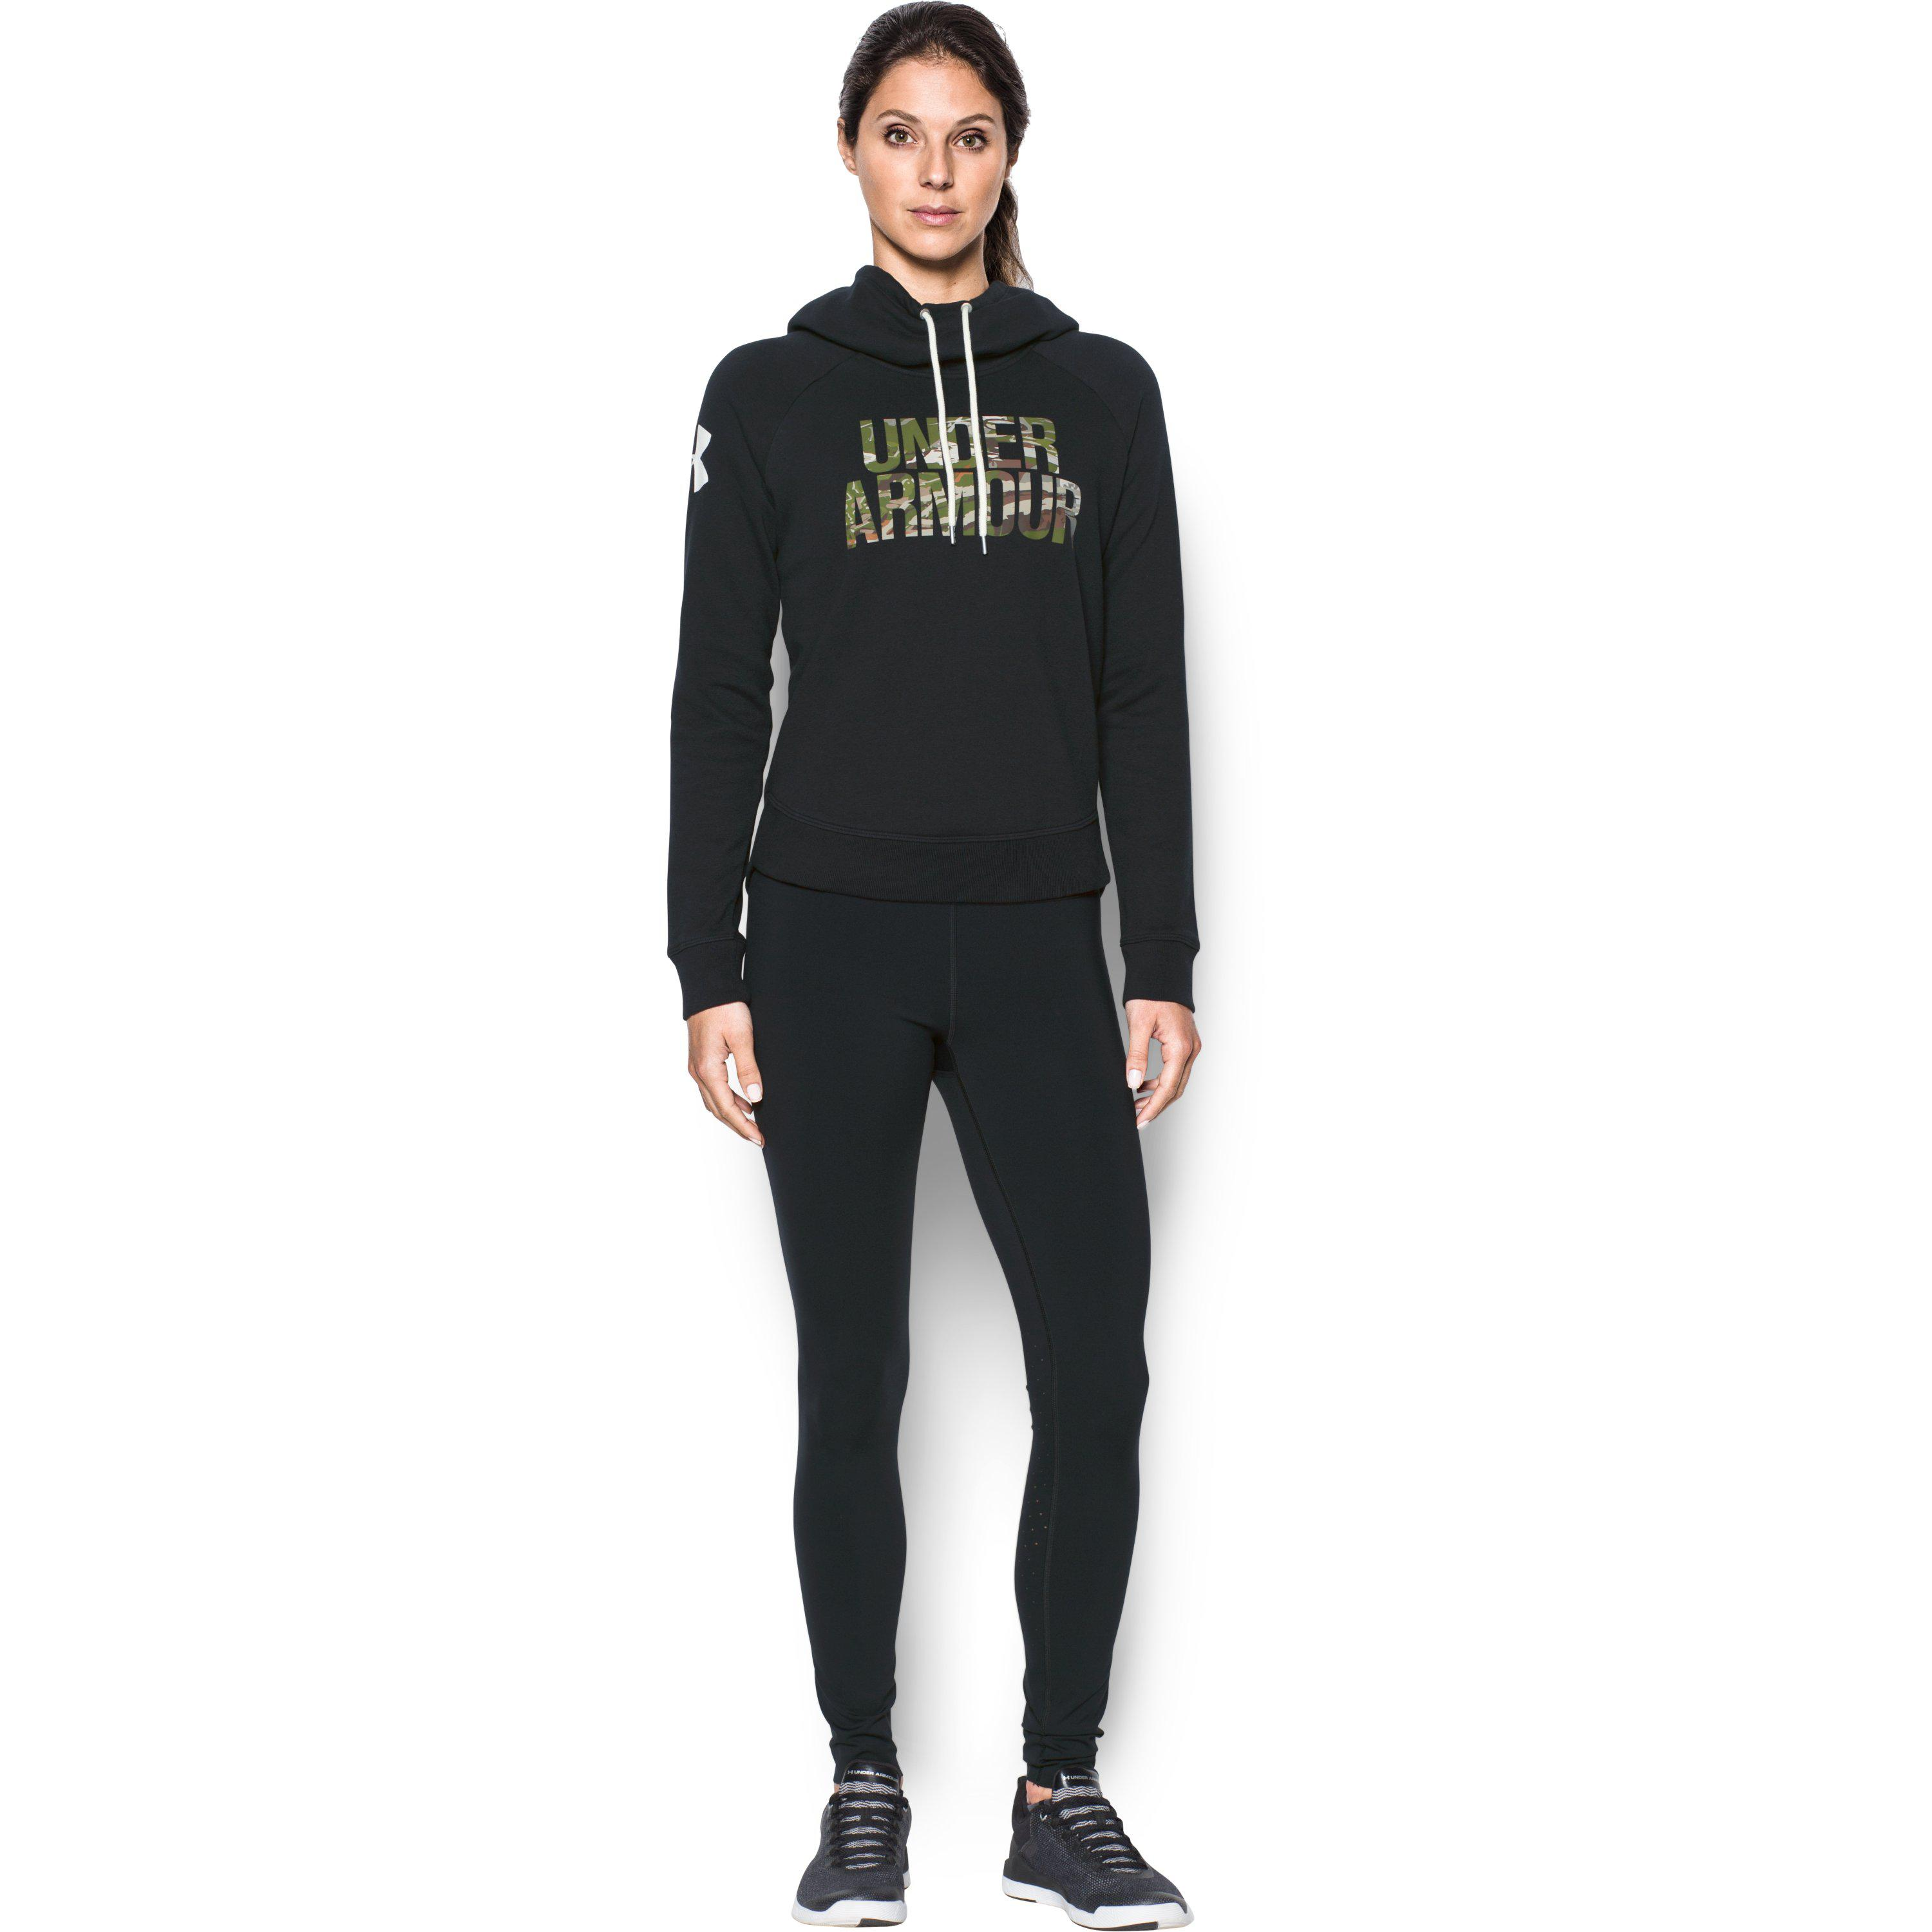 6500261bbda Lyst - Under Armour Women s Ua Favorite Fleece Camo Logo Hoodie in Black